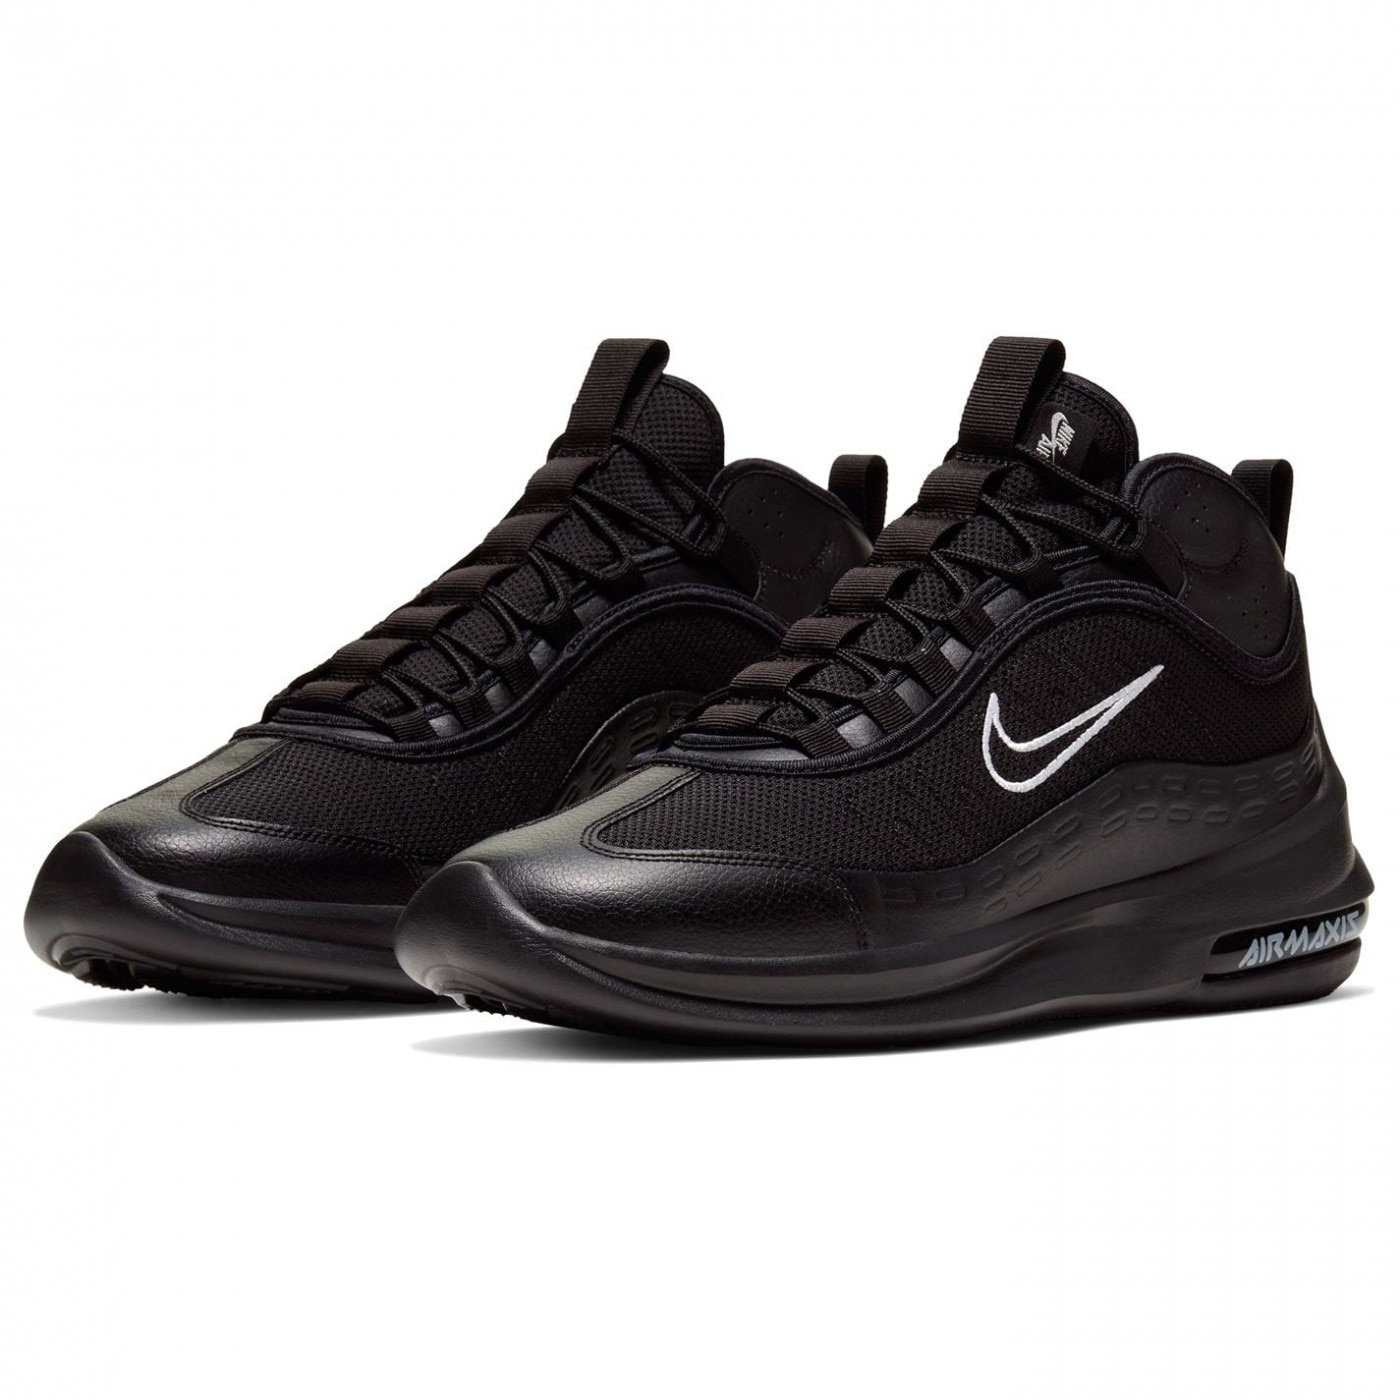 Men's trainers Nike Air Max Axis